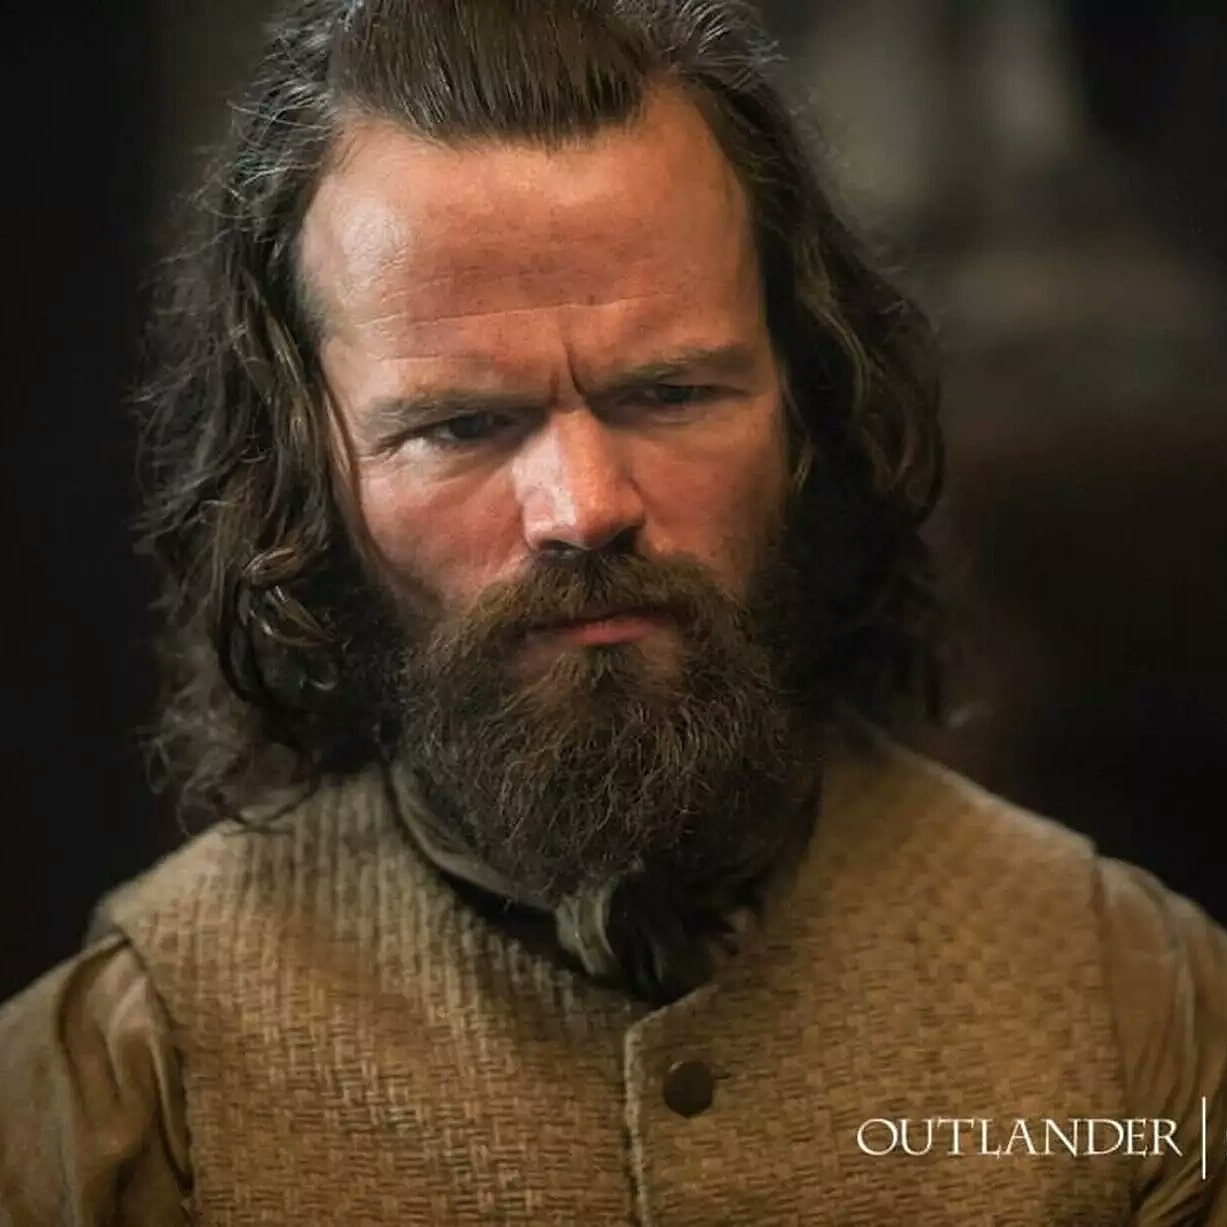 OL death trauma, made better by the follow, Stephen Walters